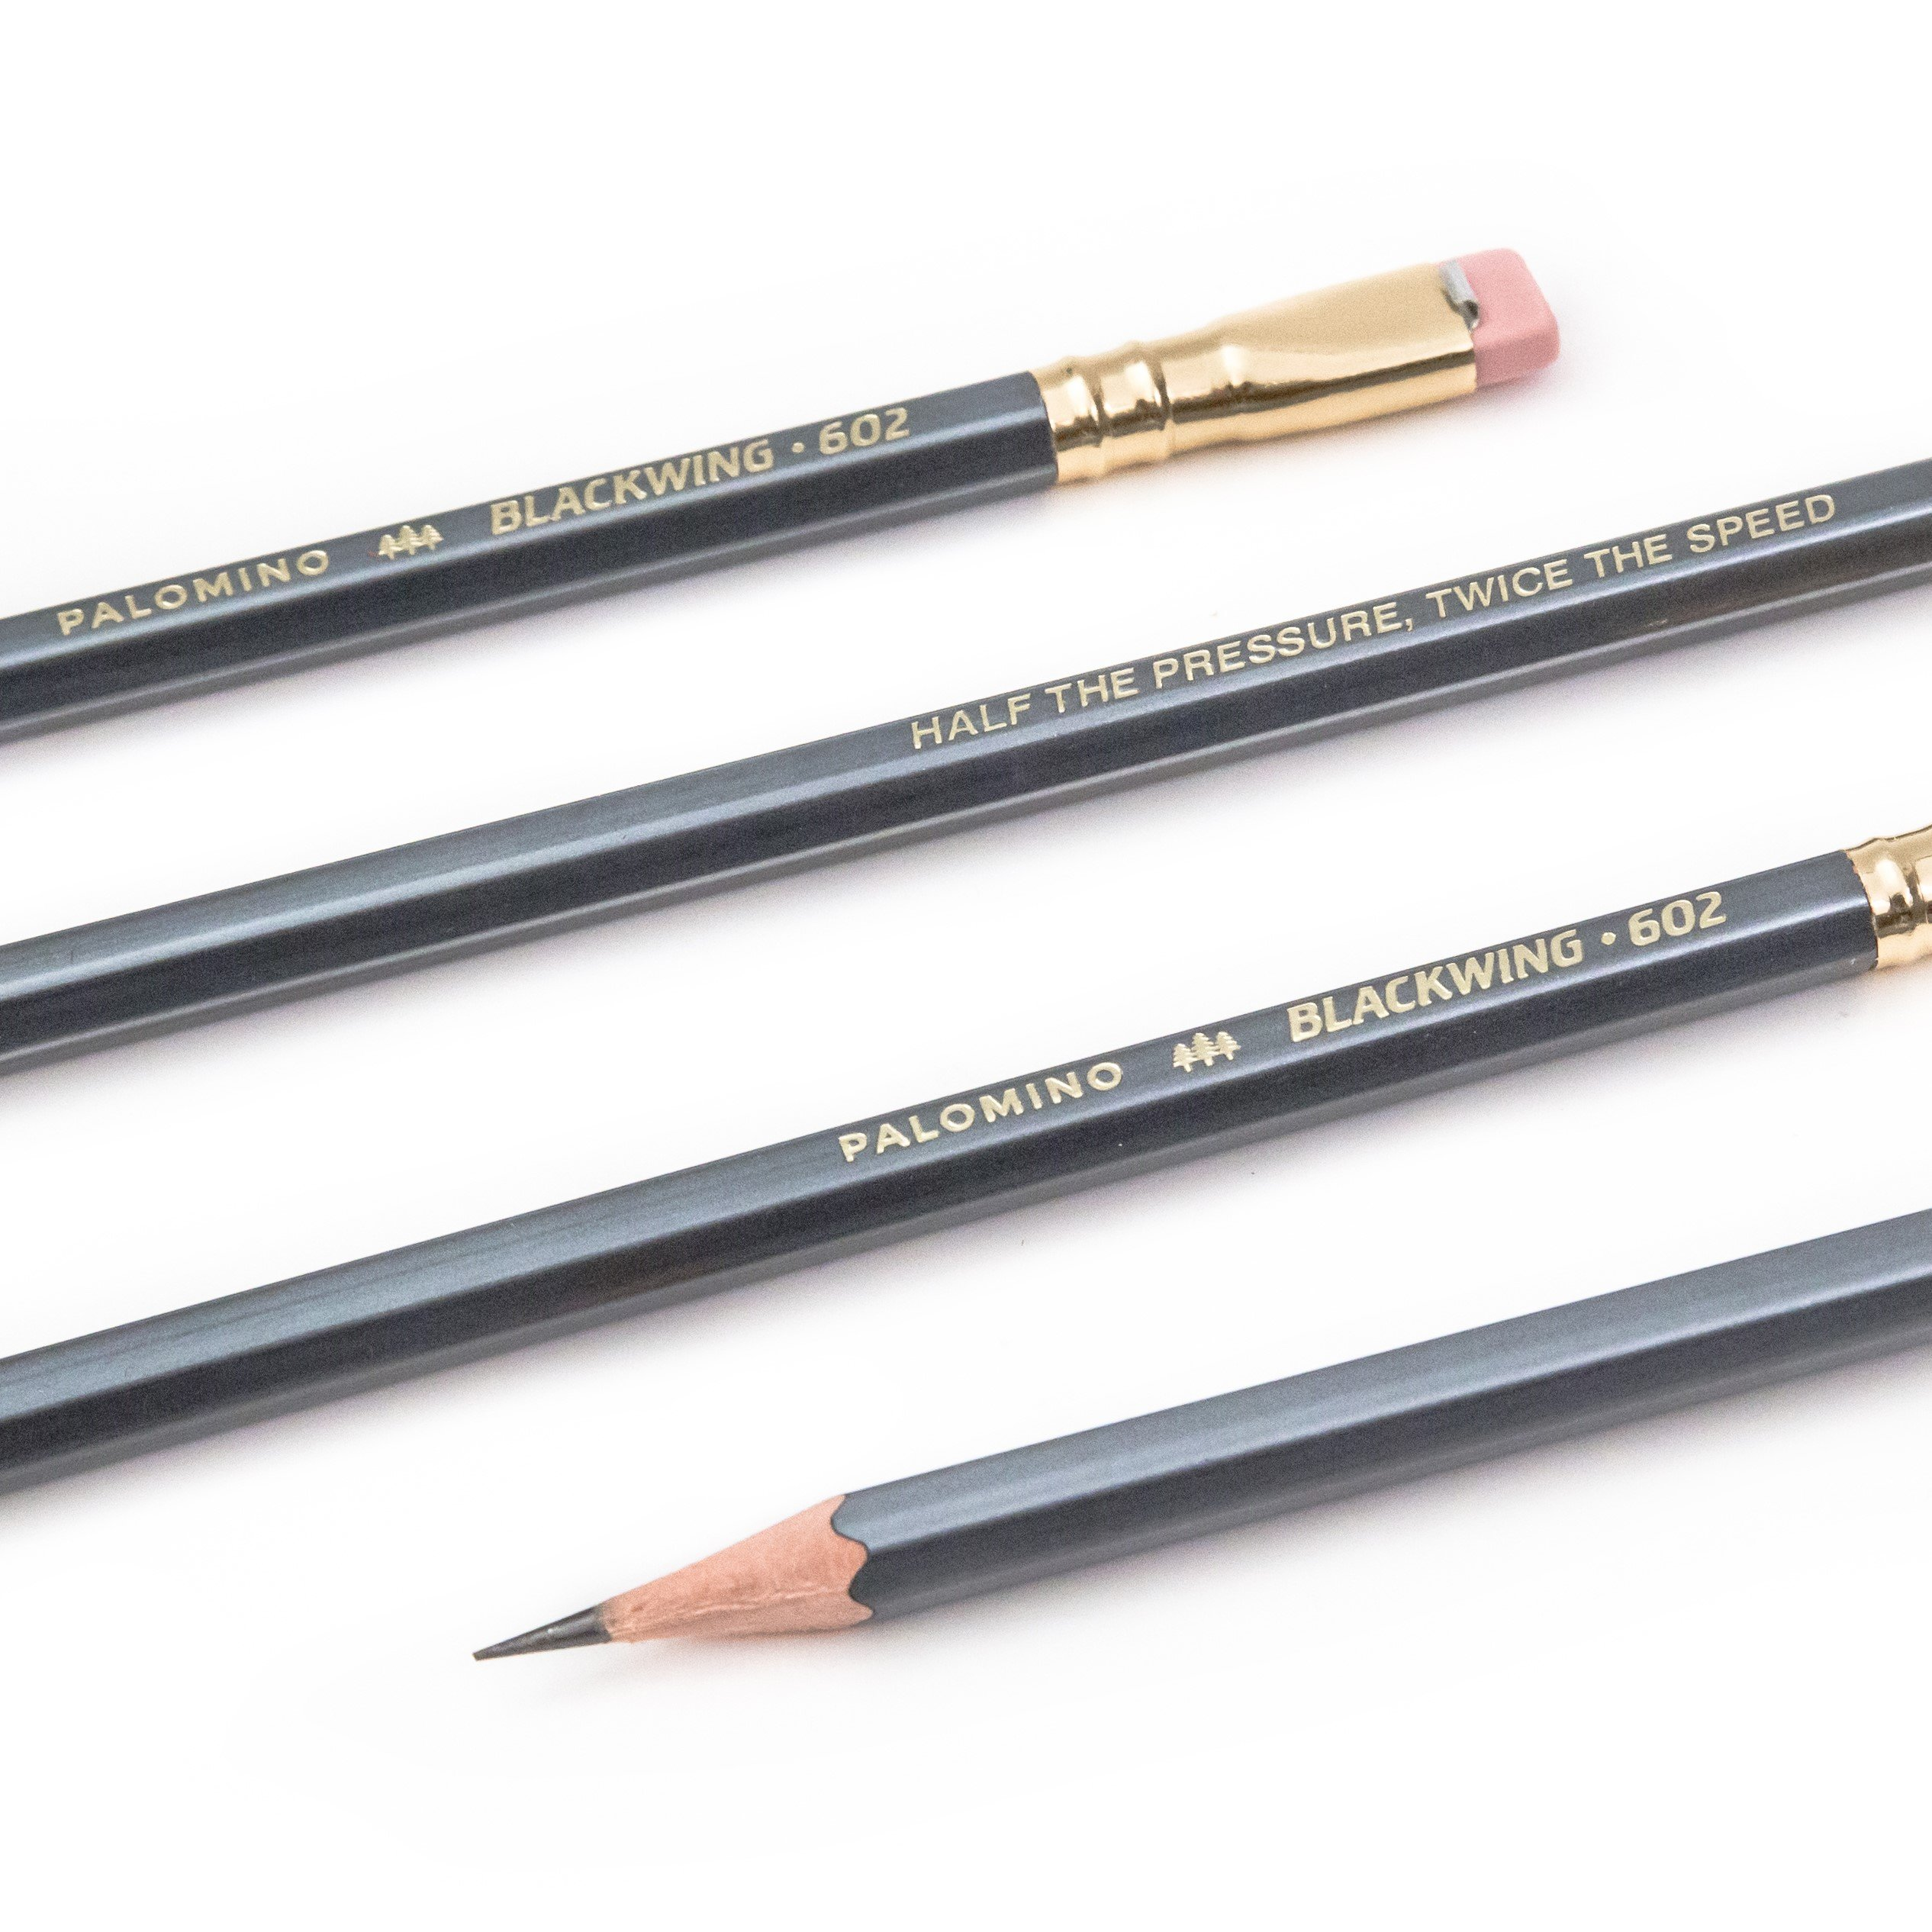 12 Lapices Negros Palomino Blackwing 602